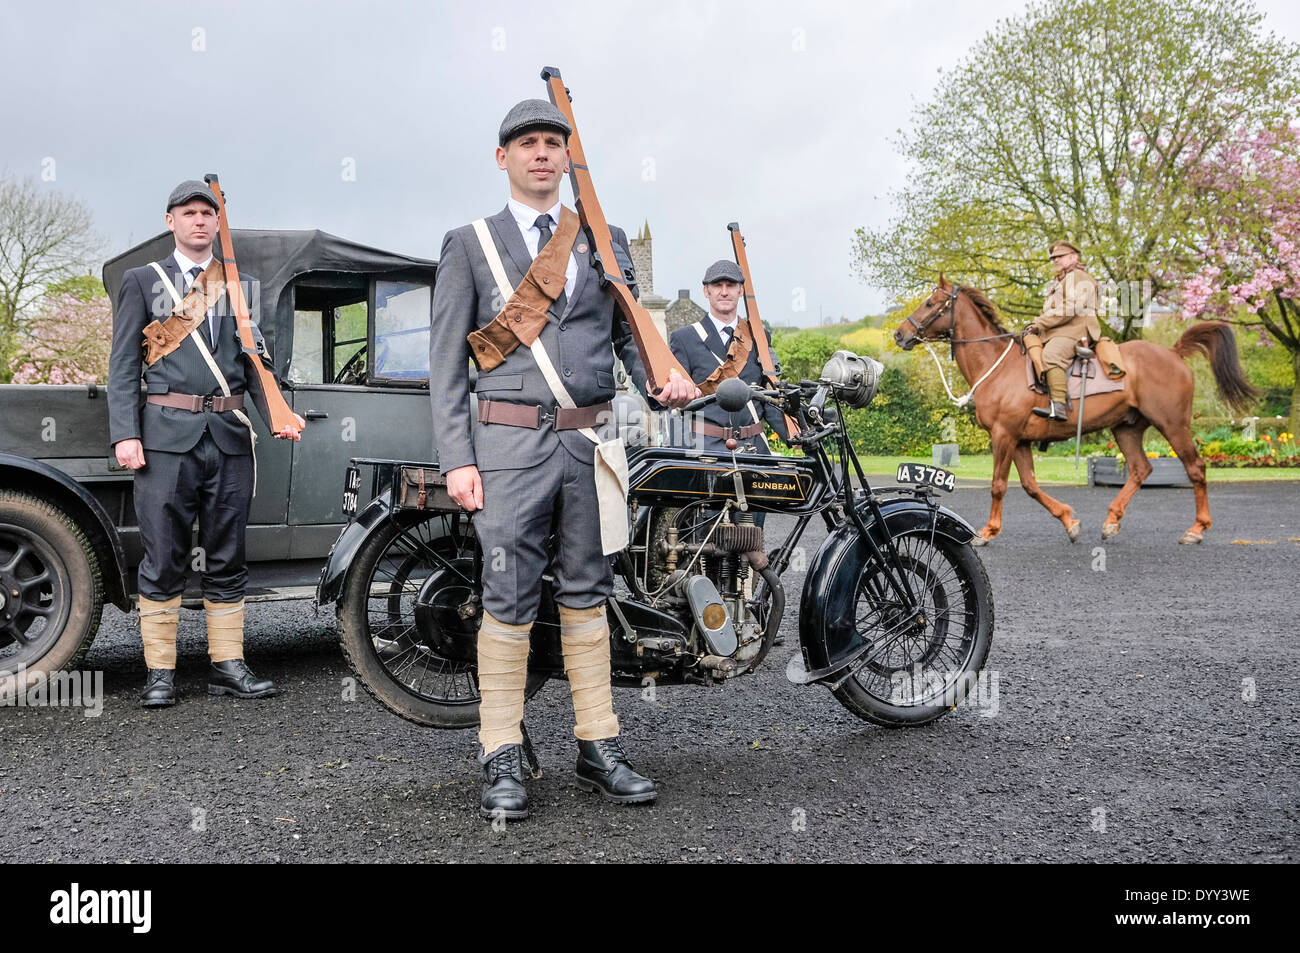 Three men dressed as members of the Ulster Volunteer Force (UVF) carry wooden rifles, as a solder rides past on Stock Photo